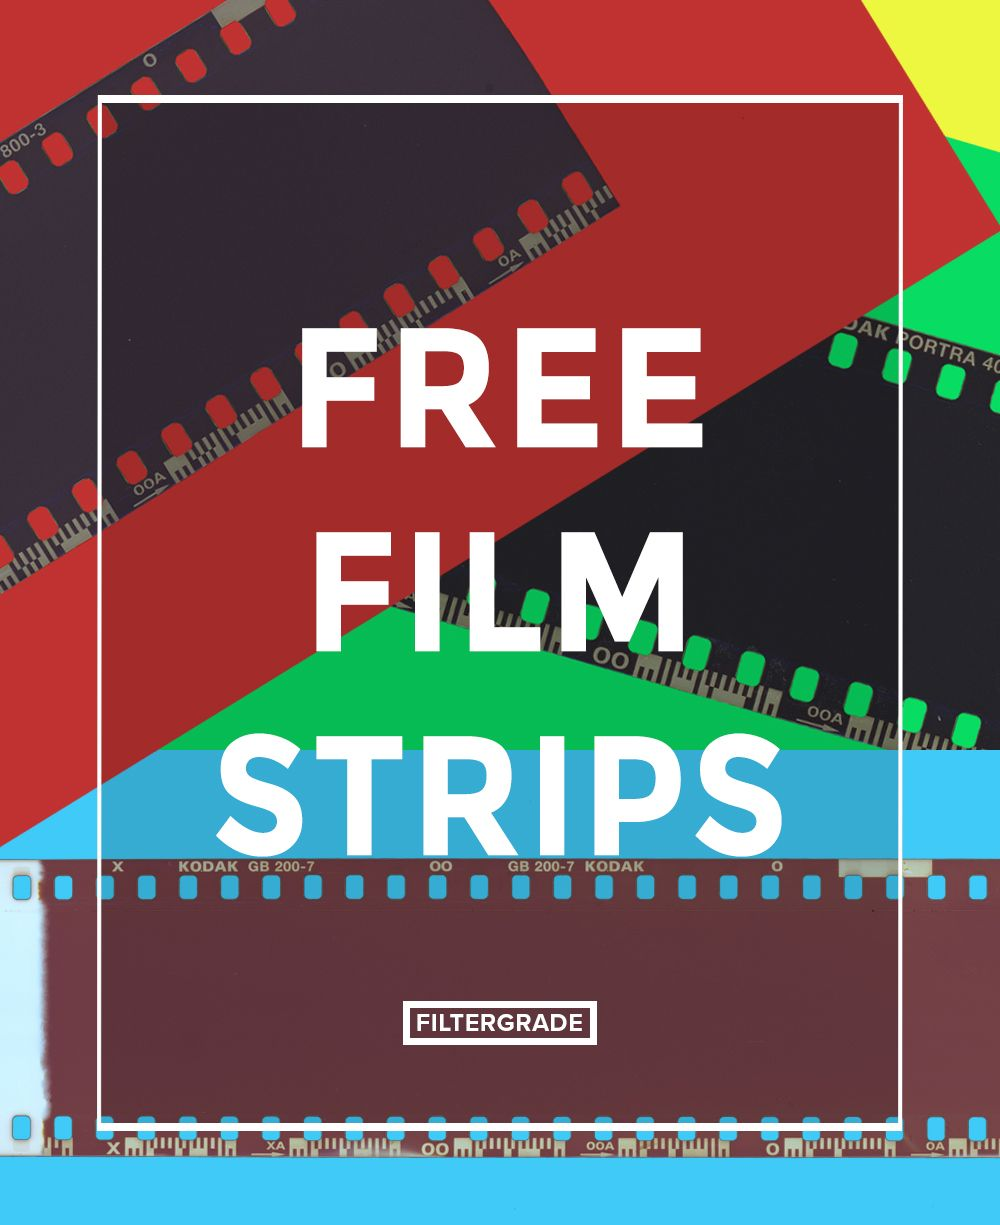 Free Film Strips Png Overlays For Media Projects Analog